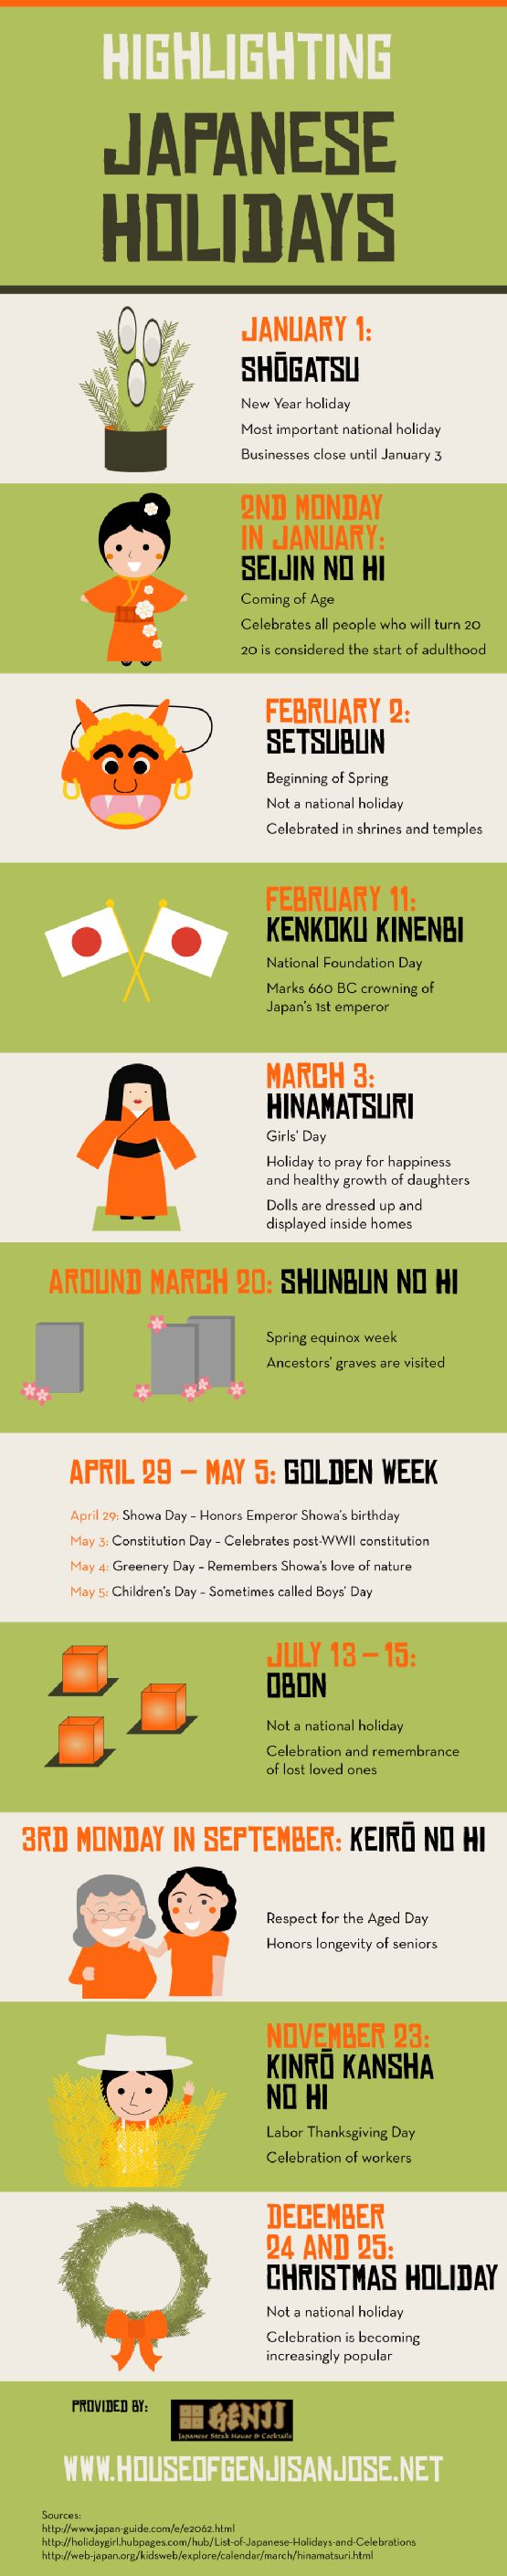 Christmas may not be a national holiday in Japan, but the celebration is becoming increasingly popular among Japanese people! Take a look at this San Jose teppan-yaki restaurant infographic to read about other Japanese holidays.